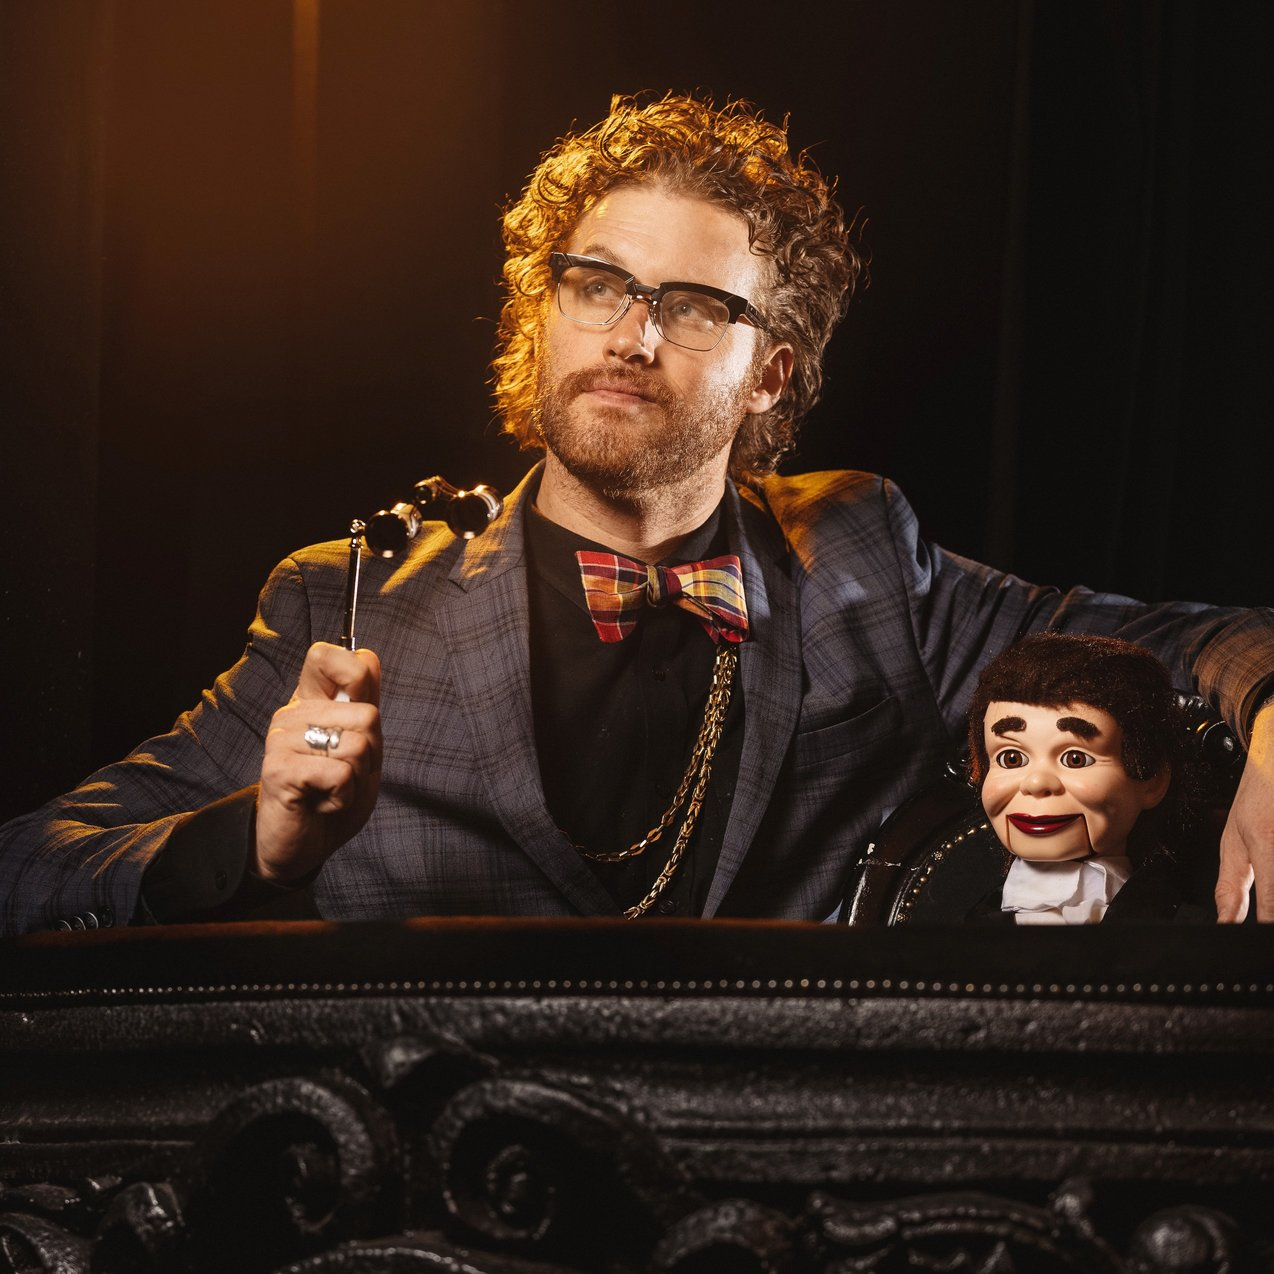 Fri. June 28th-2019/ T. J. Miller w/ Tba ( Silicon Valley, Deadpool) -(Seated Show) Montbleu Resort & Casino – 21+ On Sale Now!